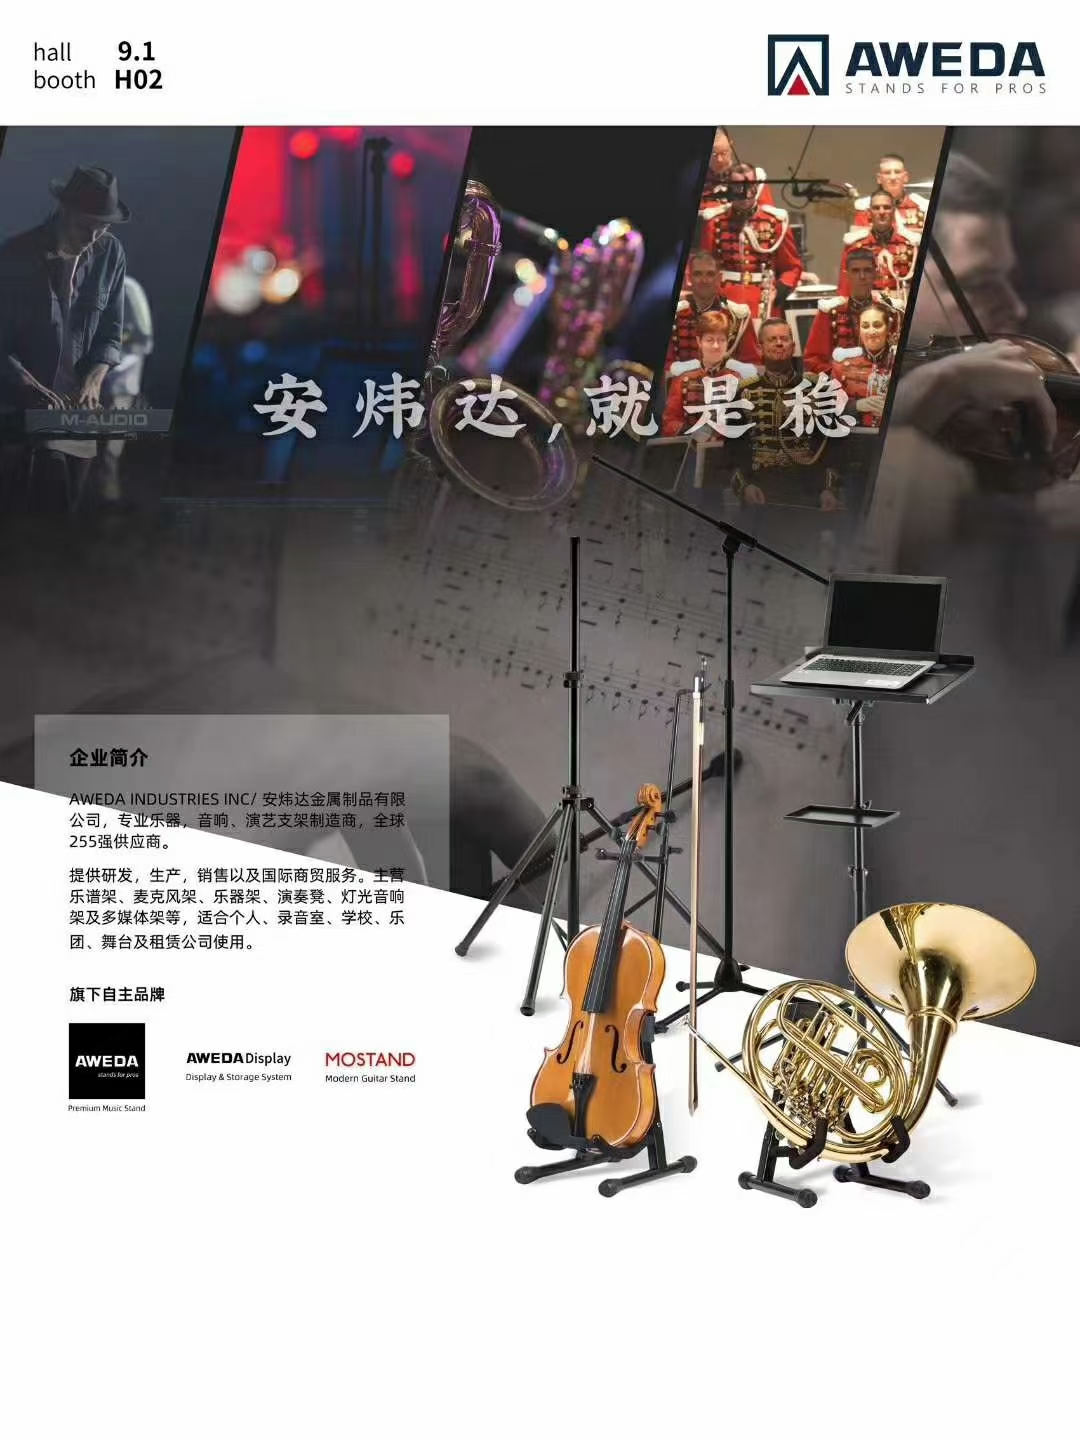 Renewal of Music Industry - 2020 Music Guangzhou Shows Vitality of Chinese Music Industry.